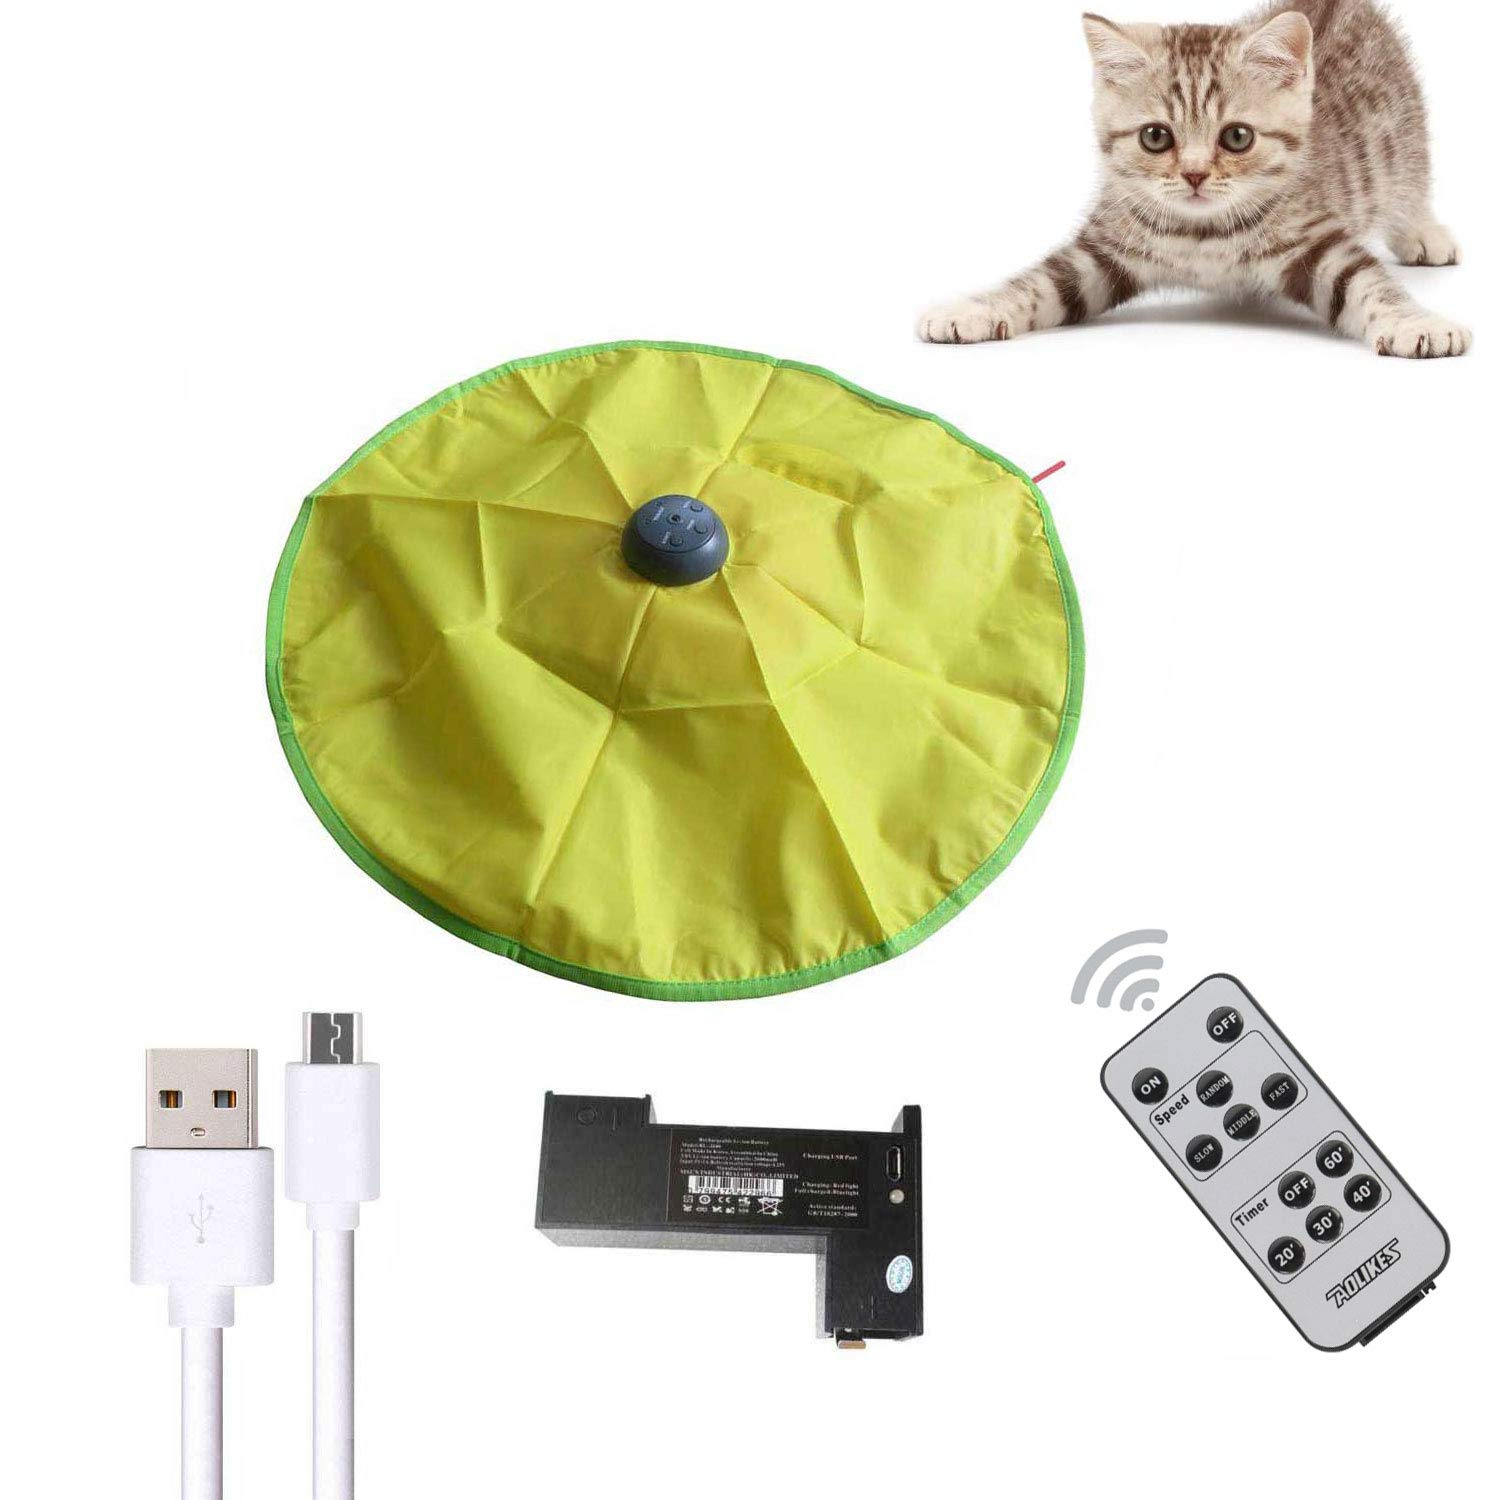 AOLIKES Interactive Cat Toys,Durable Smart Cat Toys with Remote and 3.7v Rechargeable 2600mAh Li-ion Battery,Multiple Timer - Undercover Motorized Mouse Wand Tail for All Ages Cats by AOLIKES